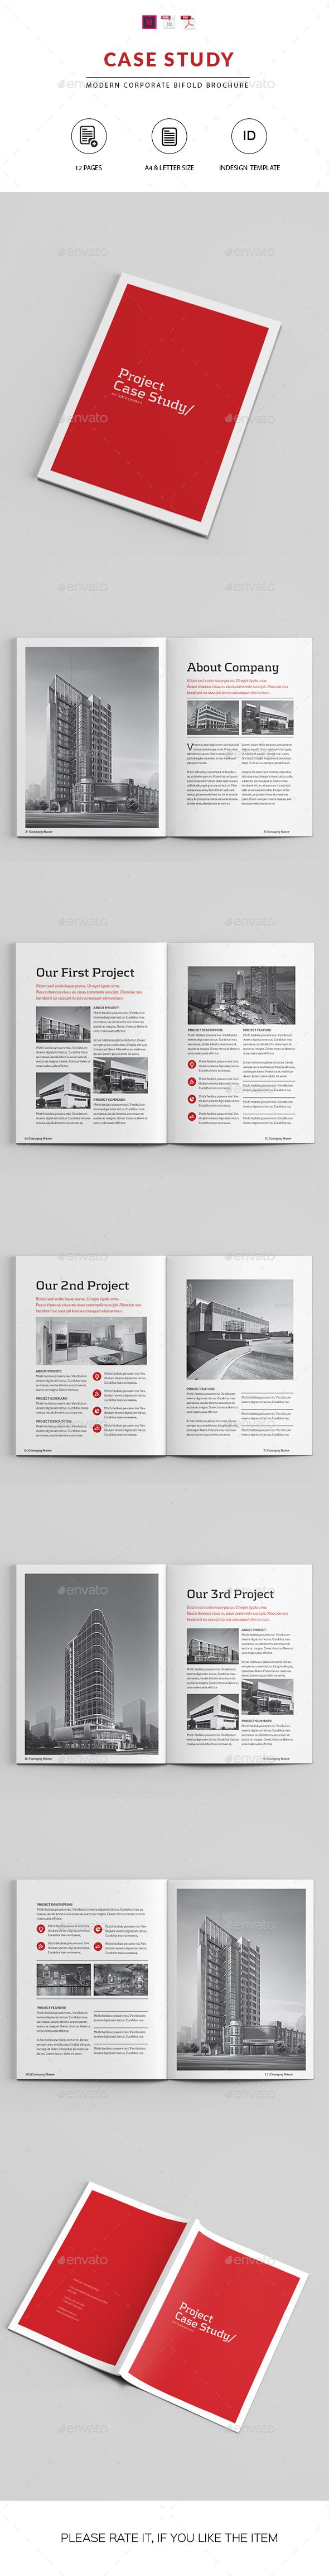 Case Study Booklet Template 	InDesign INDD. Download here: http://graphicriver.net/item/case-study-booklet-indesign-template/16514016?ref=ksioks